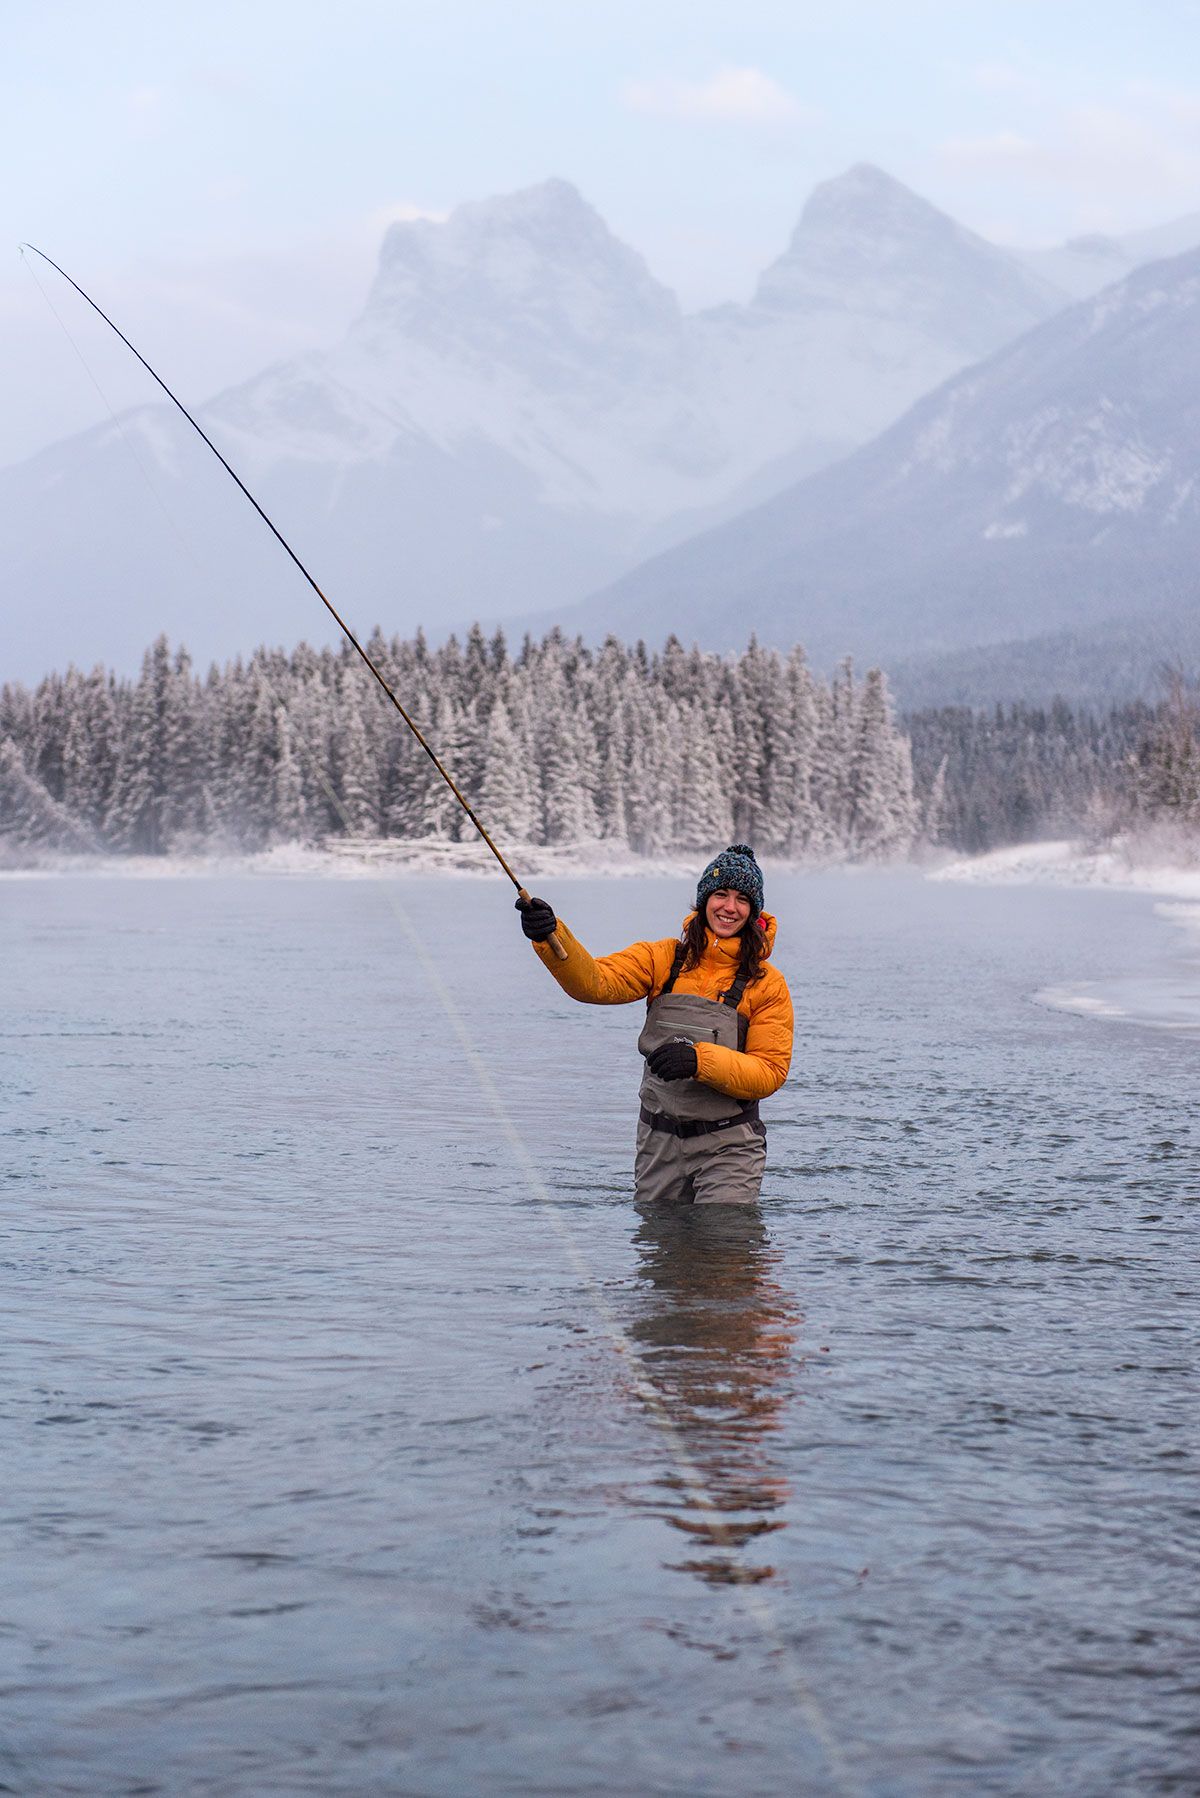 austin-trigg-patagonia-banff-alberta-winter-canada-lifestyle-adventure-mountains-canmore-catch-fish-fly-fishing-frozen.jpg